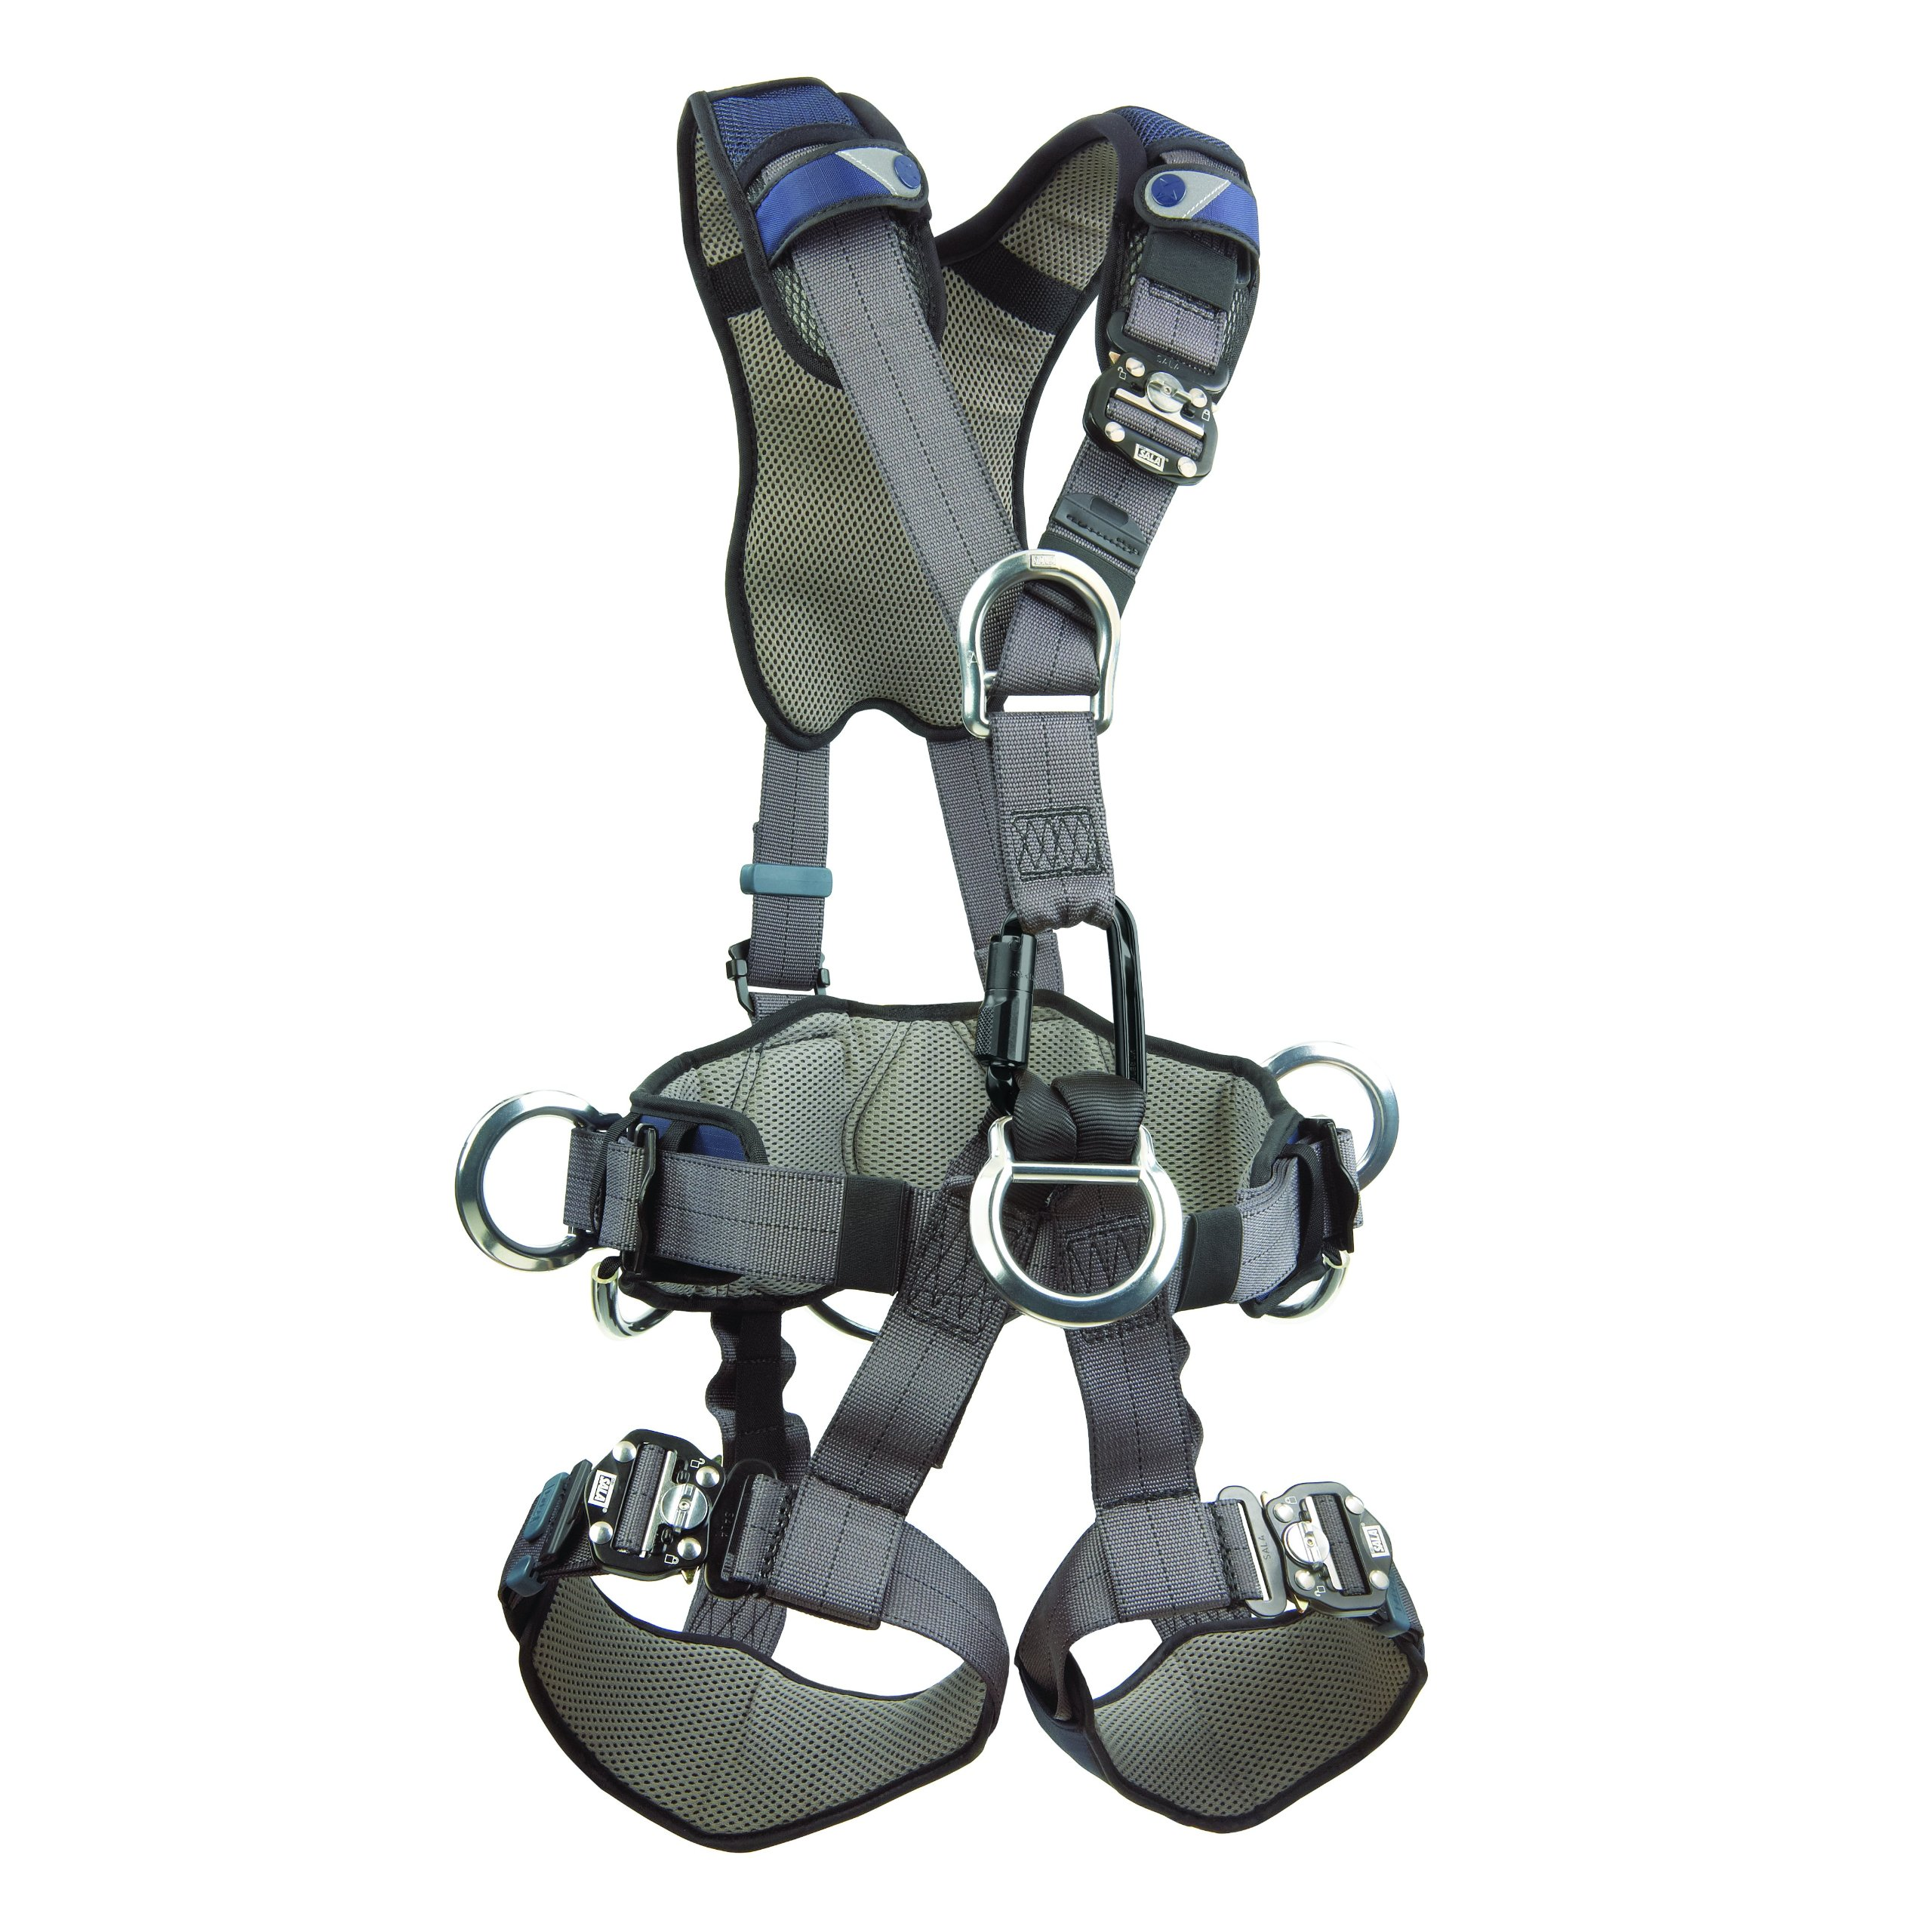 3M DBI-SALA ExoFit NEX 1113346 Full Body Rope Access/Rescue Harness, Alum Back/Front/Suspension D-Rings, Belt w/ Pad/Side D-Rings, Locking QC Leg Straps, Medium, Blue/Grey by 3M Fall Protection Business (Image #1)